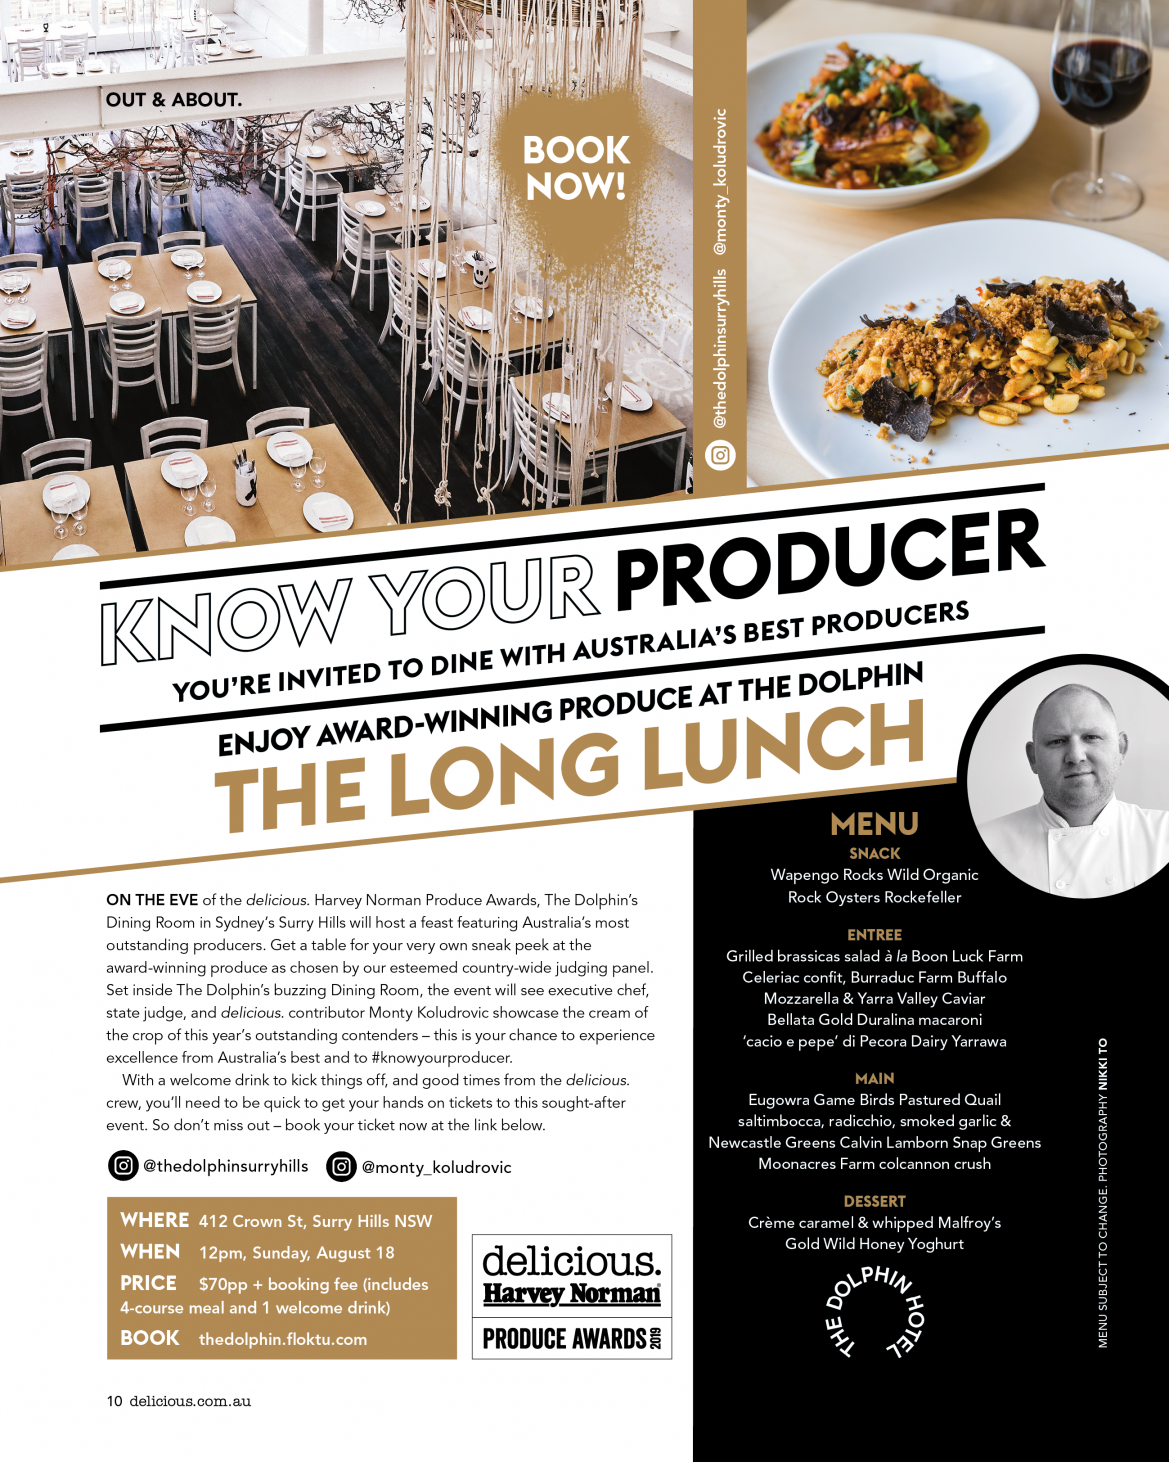 Know Your Producer - The Long Lunch